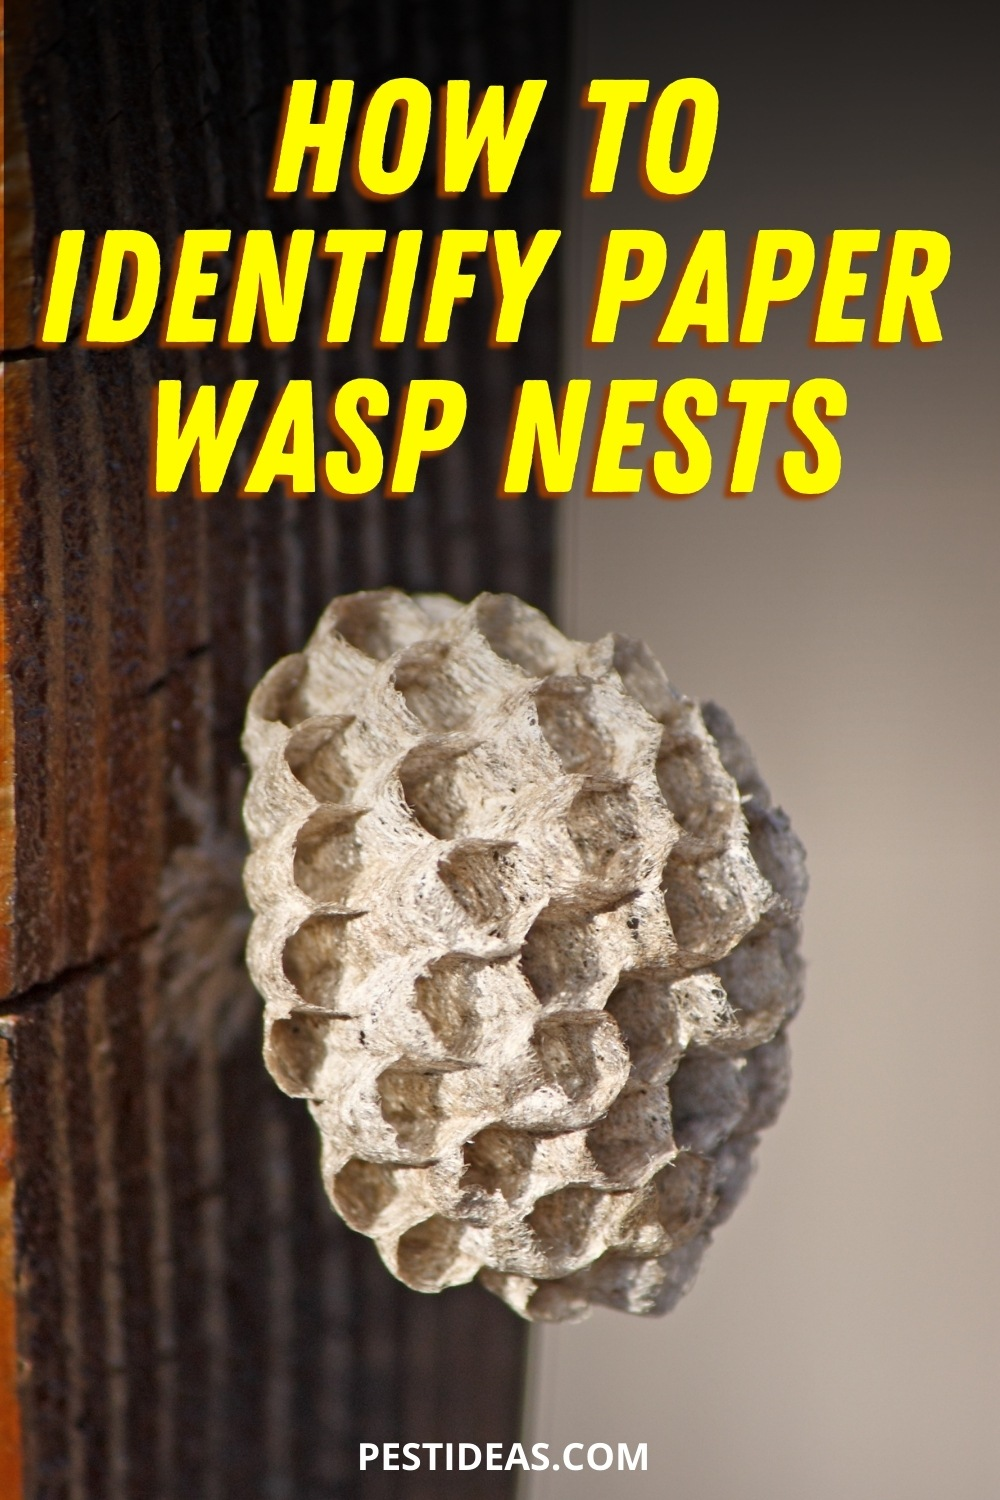 How to identify paper wasp nests